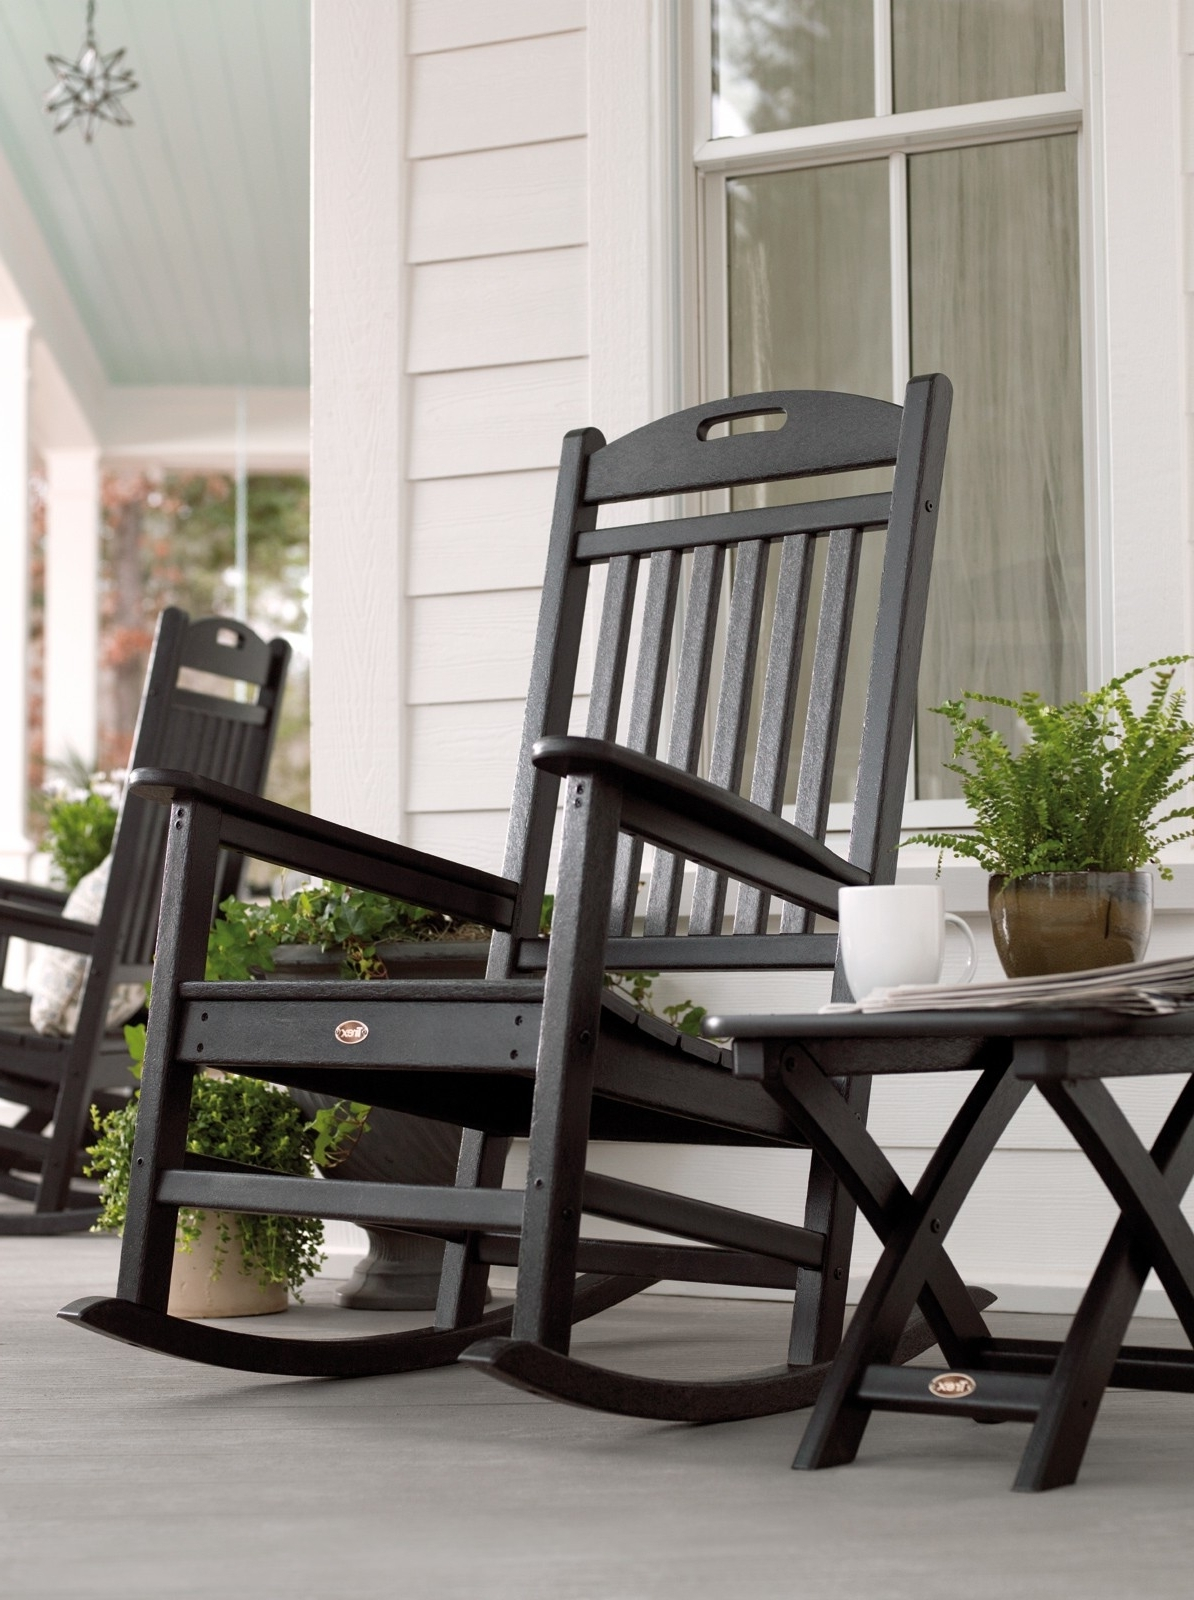 Vintage Outdoor Rocking Chairs For Famous Patio & Garden : Rocking Chairs For Outdoors Amazing Amazon Merry (View 8 of 20)